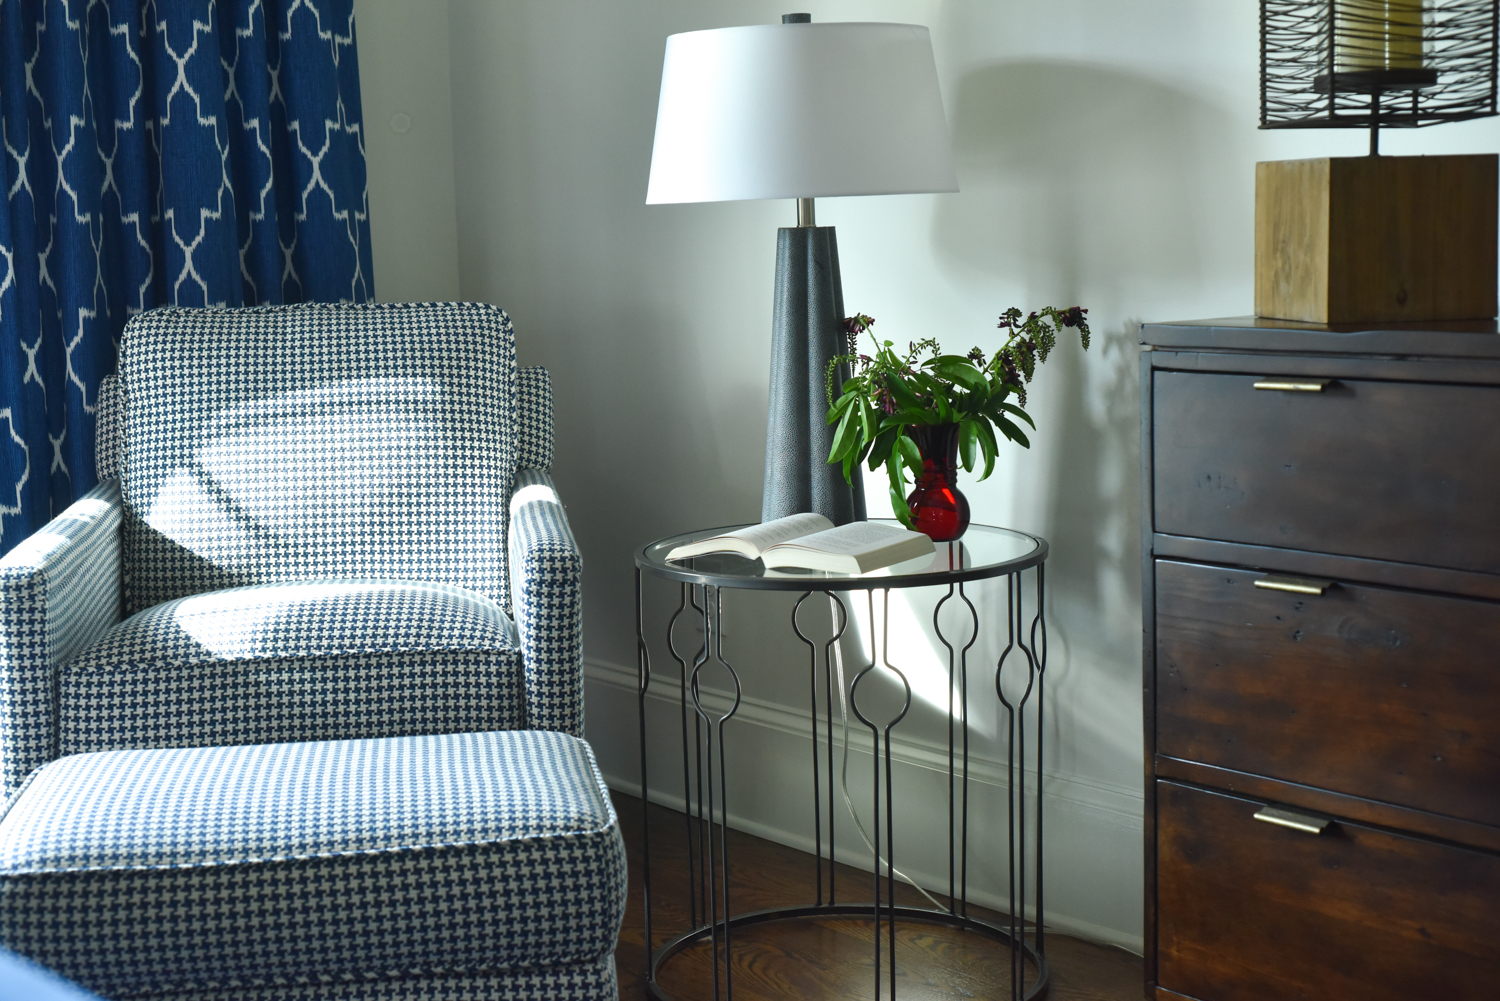 4th of July - Blue Room designed by Susan Victor of Nandina Home and Design